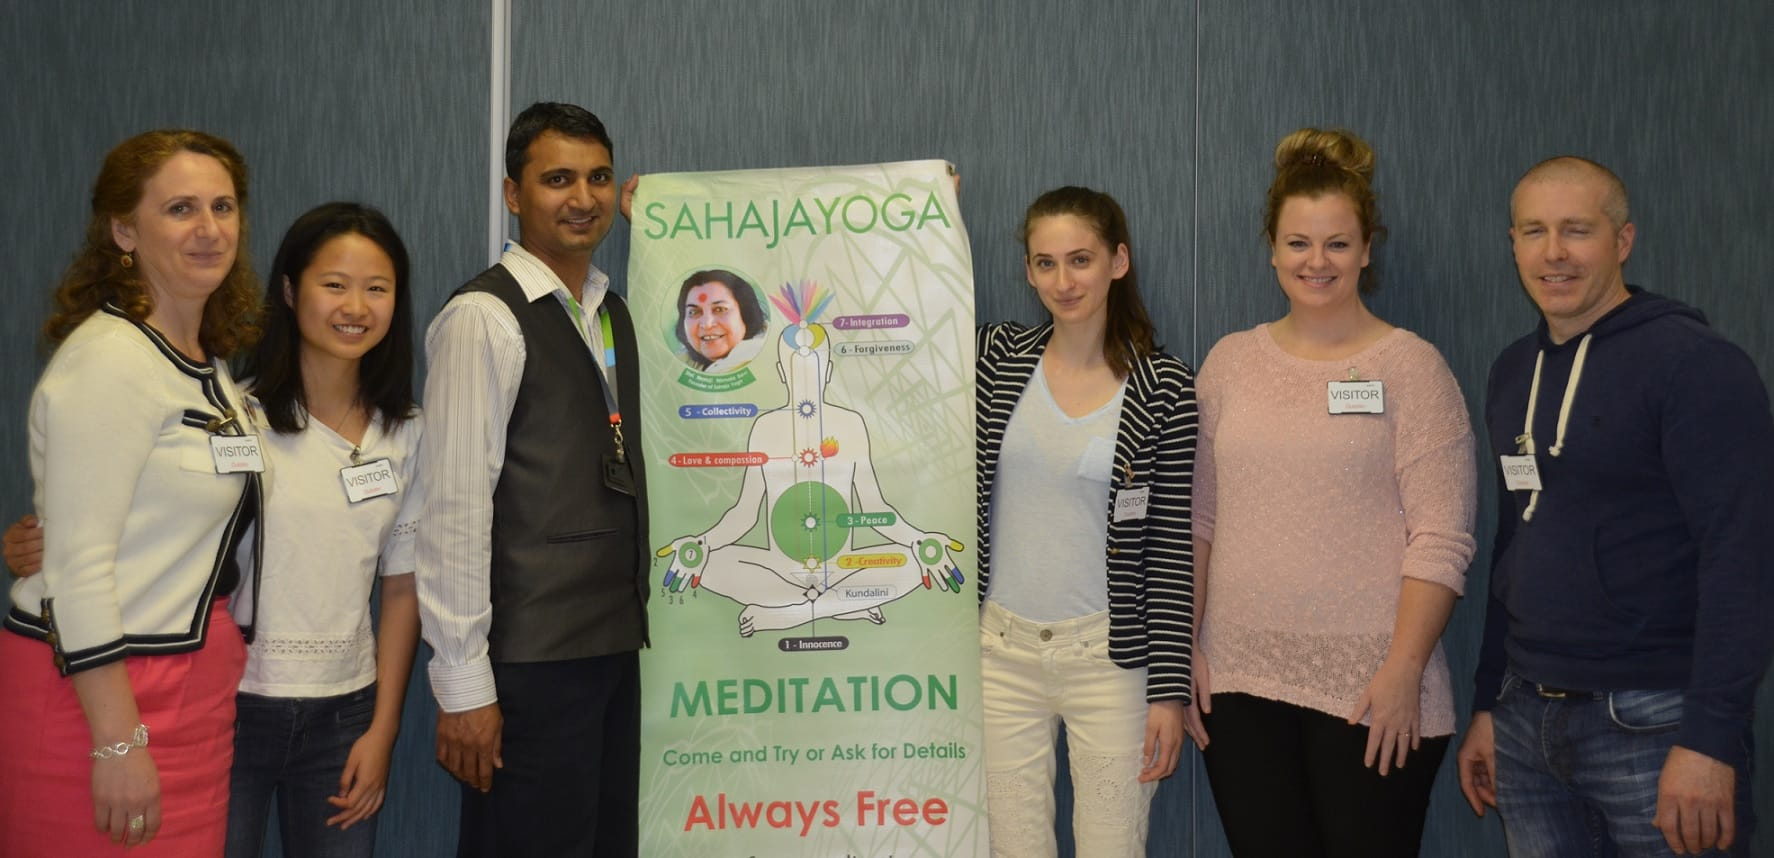 The complete Inner Peace team that visited Outotec: Only Sahaja Yogis - Ioana, Shulin, Nitin, AnaBianca, Holly and Jon